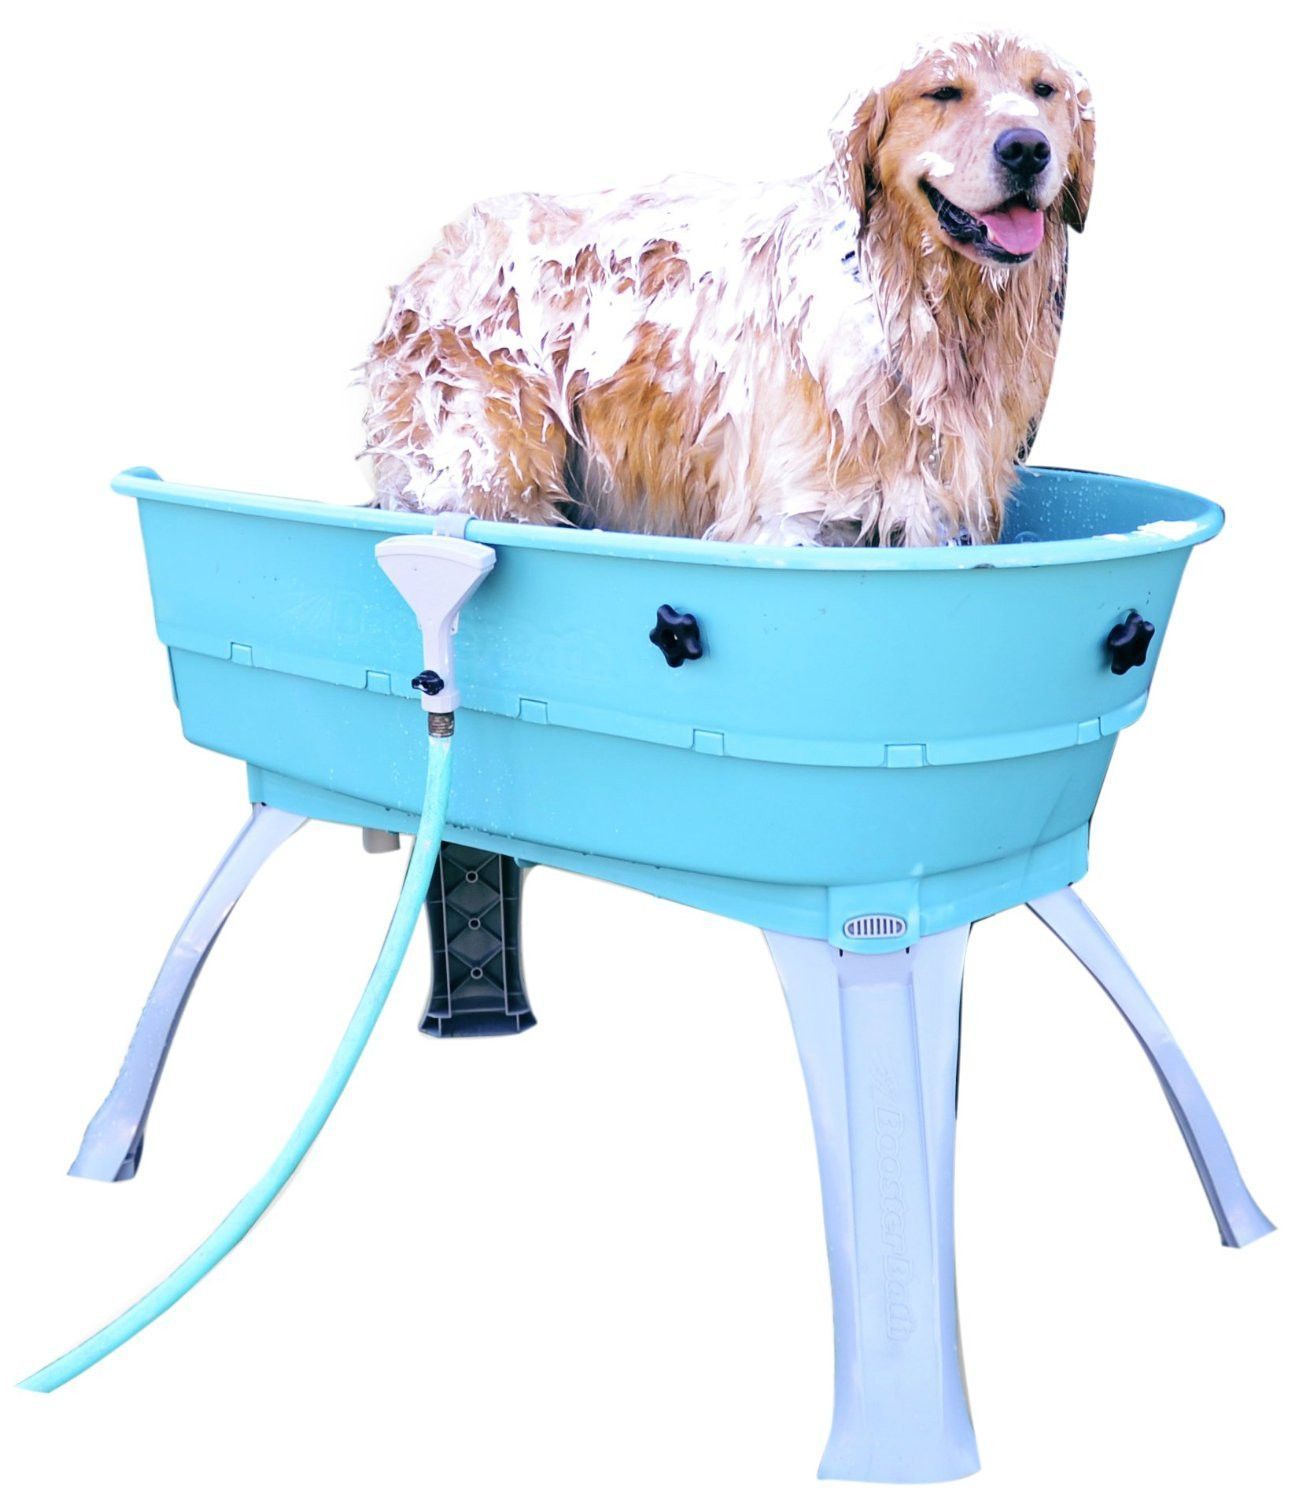 The Booster Bath Elevated Dog Bathing And Grooming Tub Is